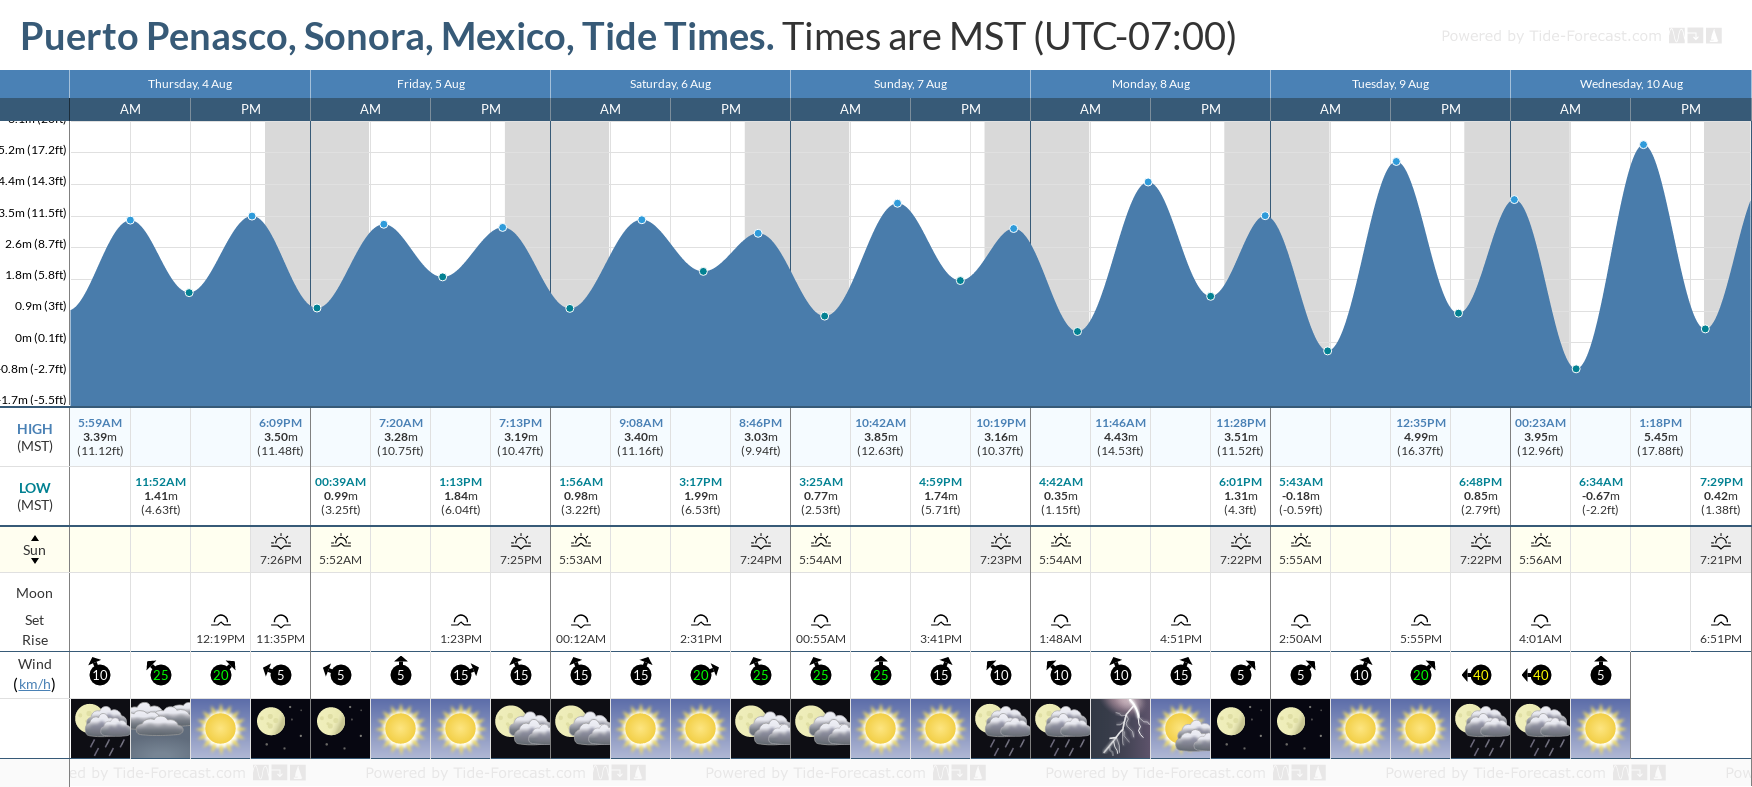 Puerto Penasco, Sonora, Mexico Tide Chart including high and low tide tide times for the next 7 days